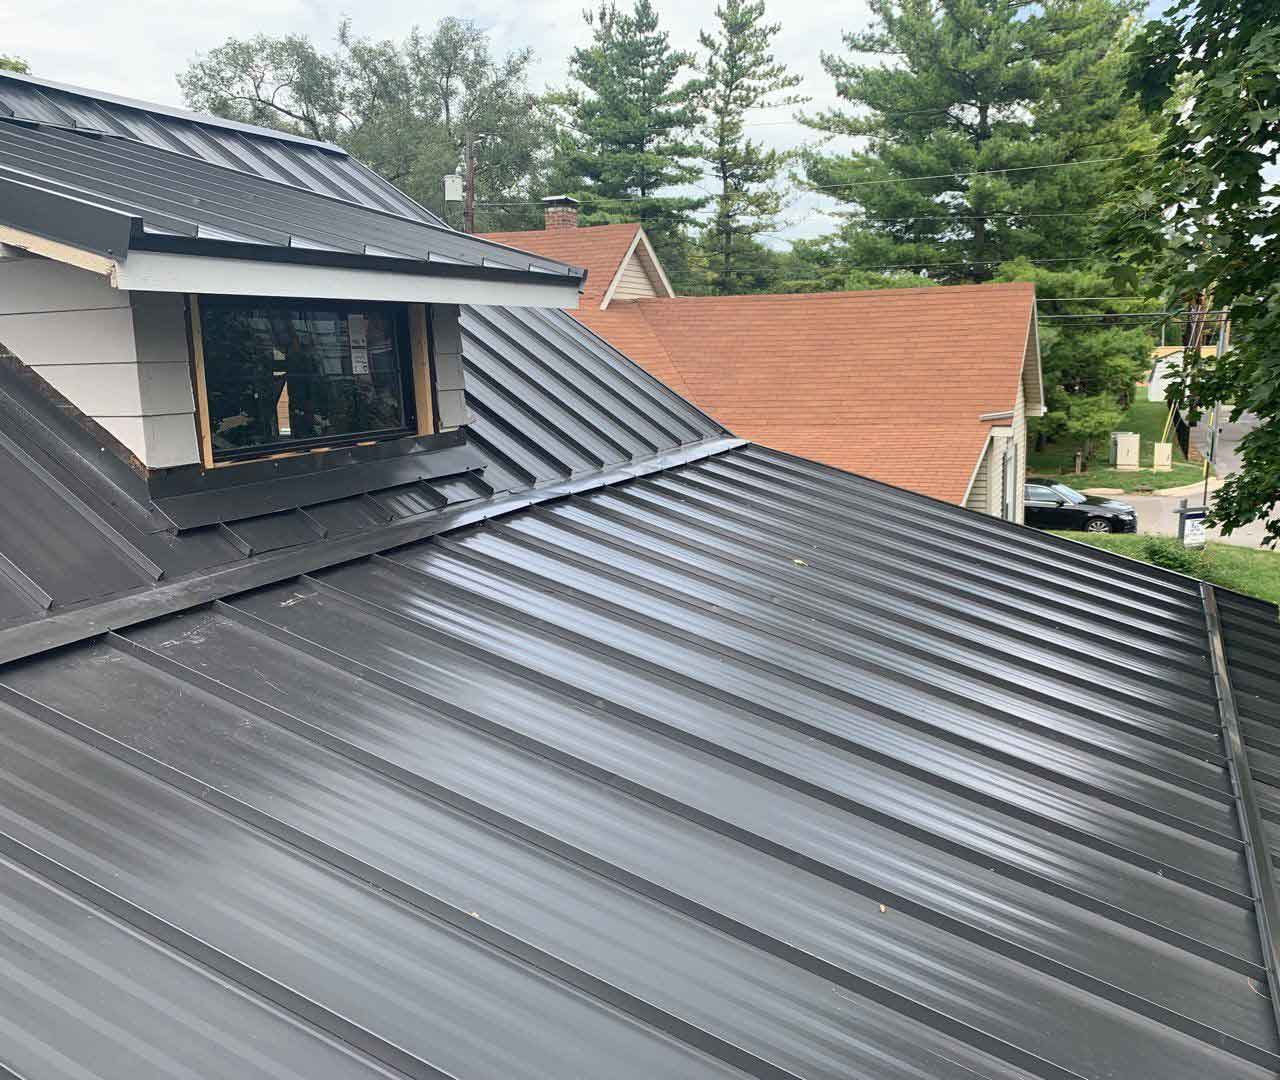 another residential roof